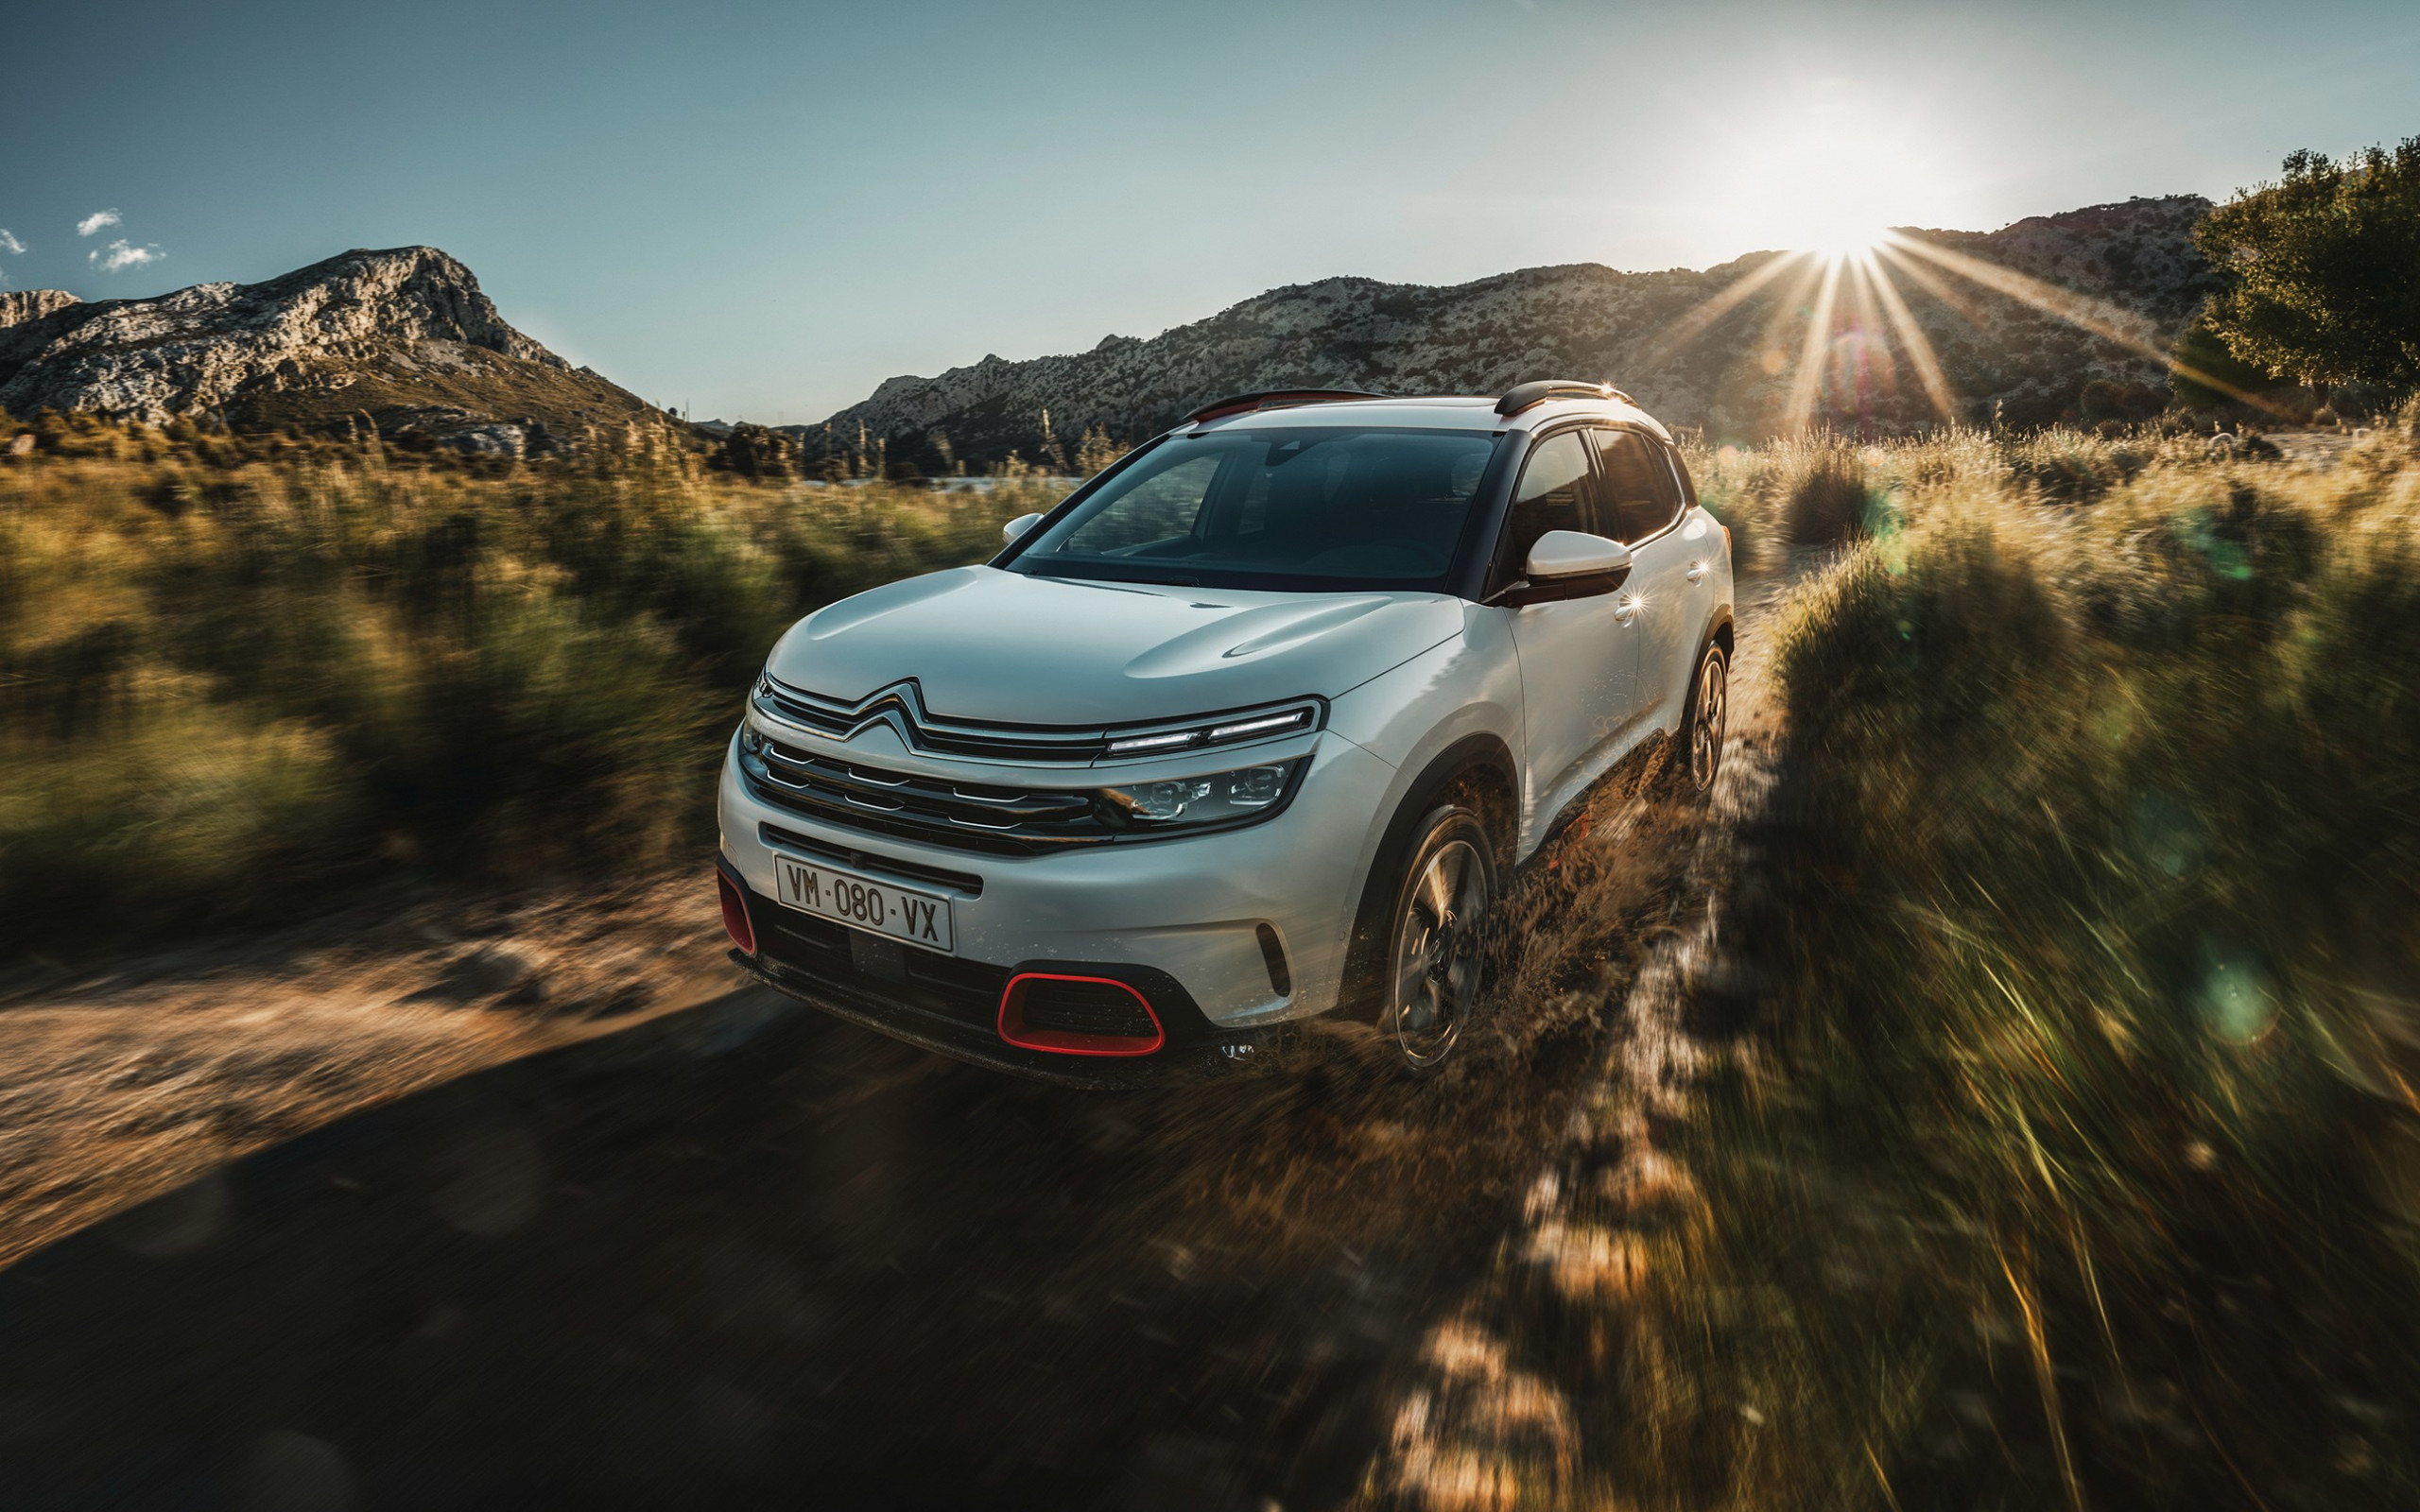 Citroen C5 Aircross | 2560x1600 wallpaper